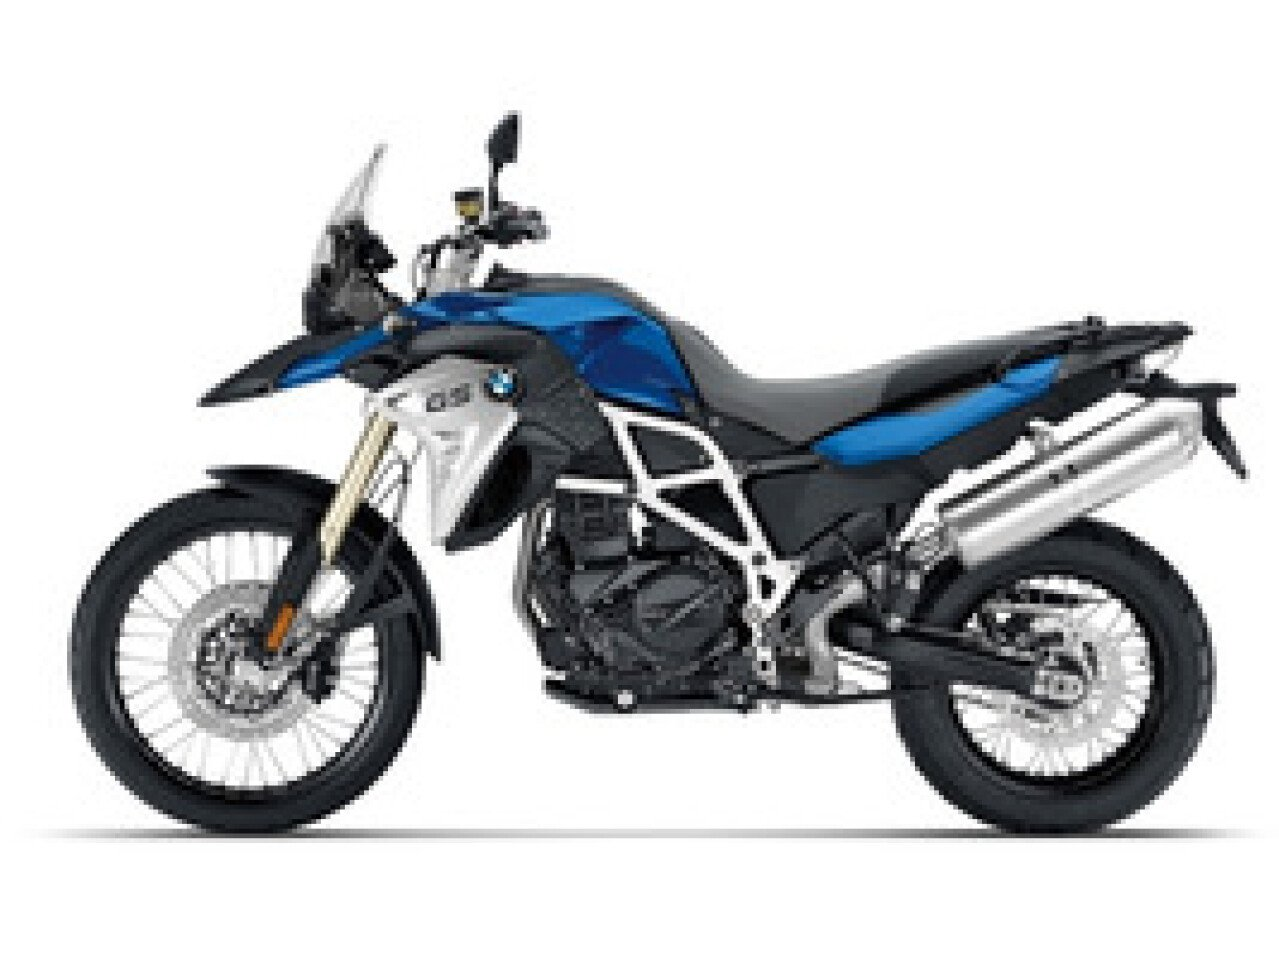 2018 Bmw F800gs For Sale Near Fort Worth Texas 76116